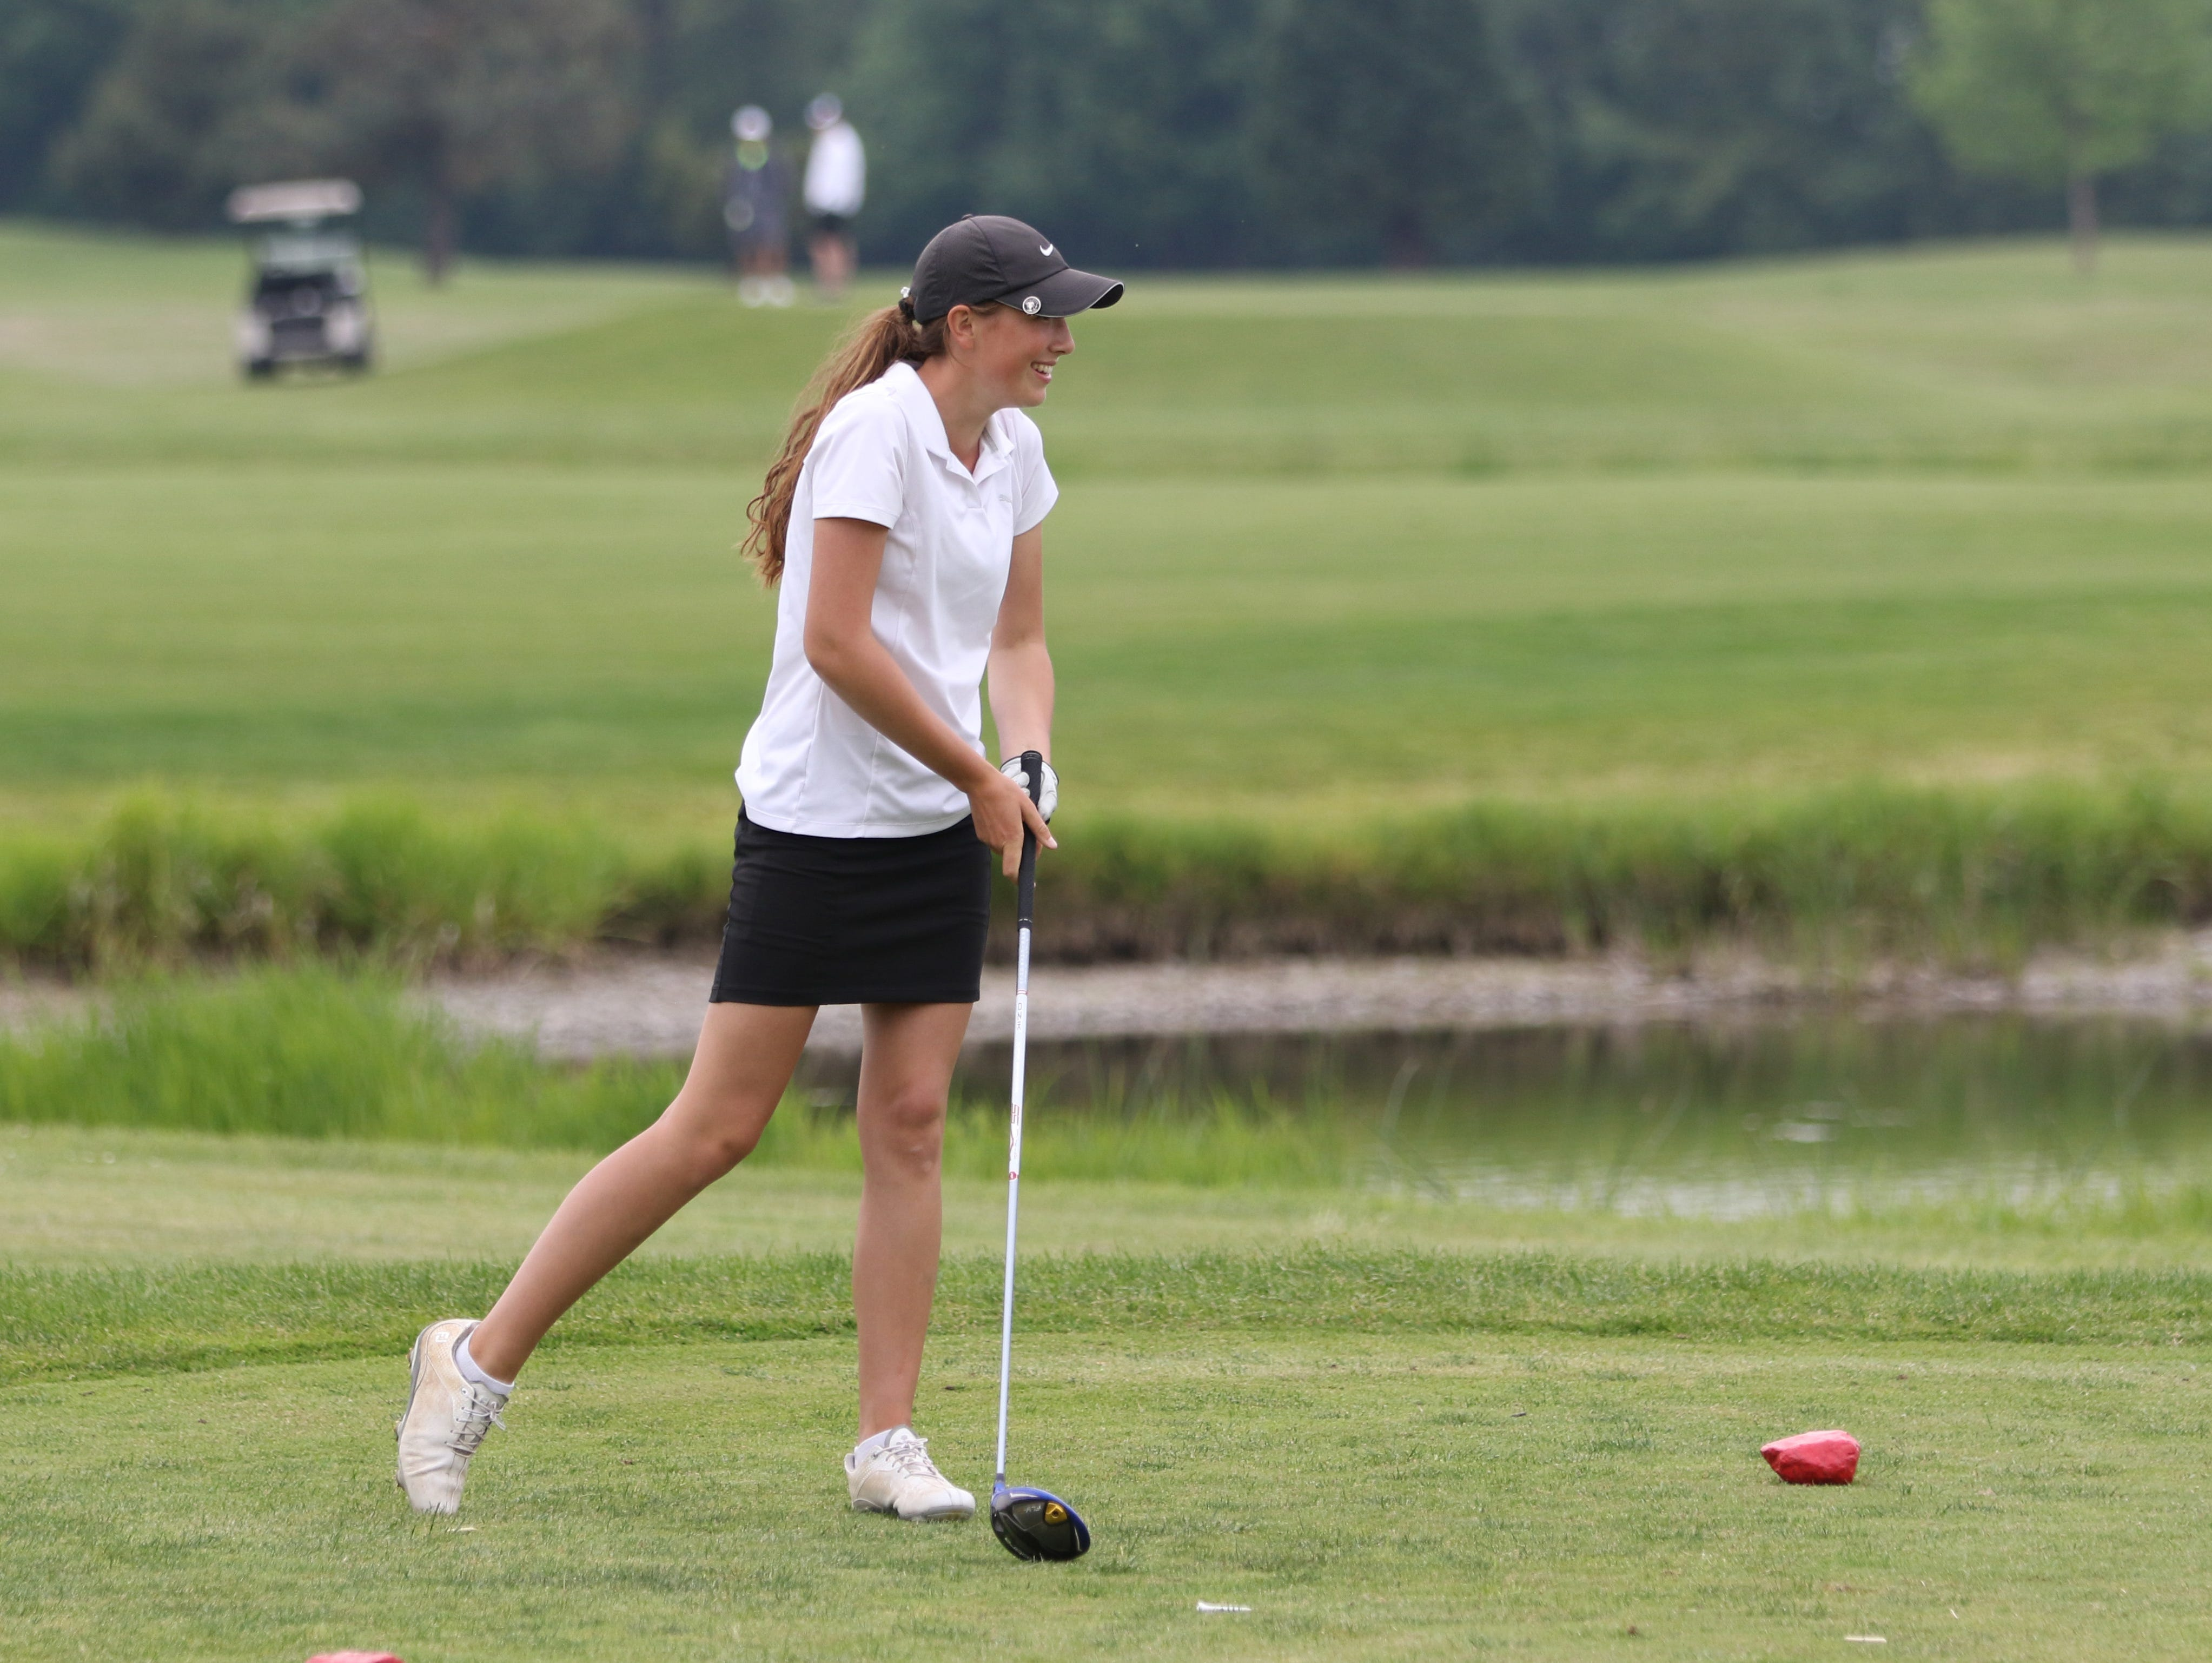 South Salem's Ellie Slama tees off during the final day of the Greater Valley Conference District Golf Tournament on Tuesday, May 3, 2016, at Trysting Tree Golf Club in Corvallis, Ore.